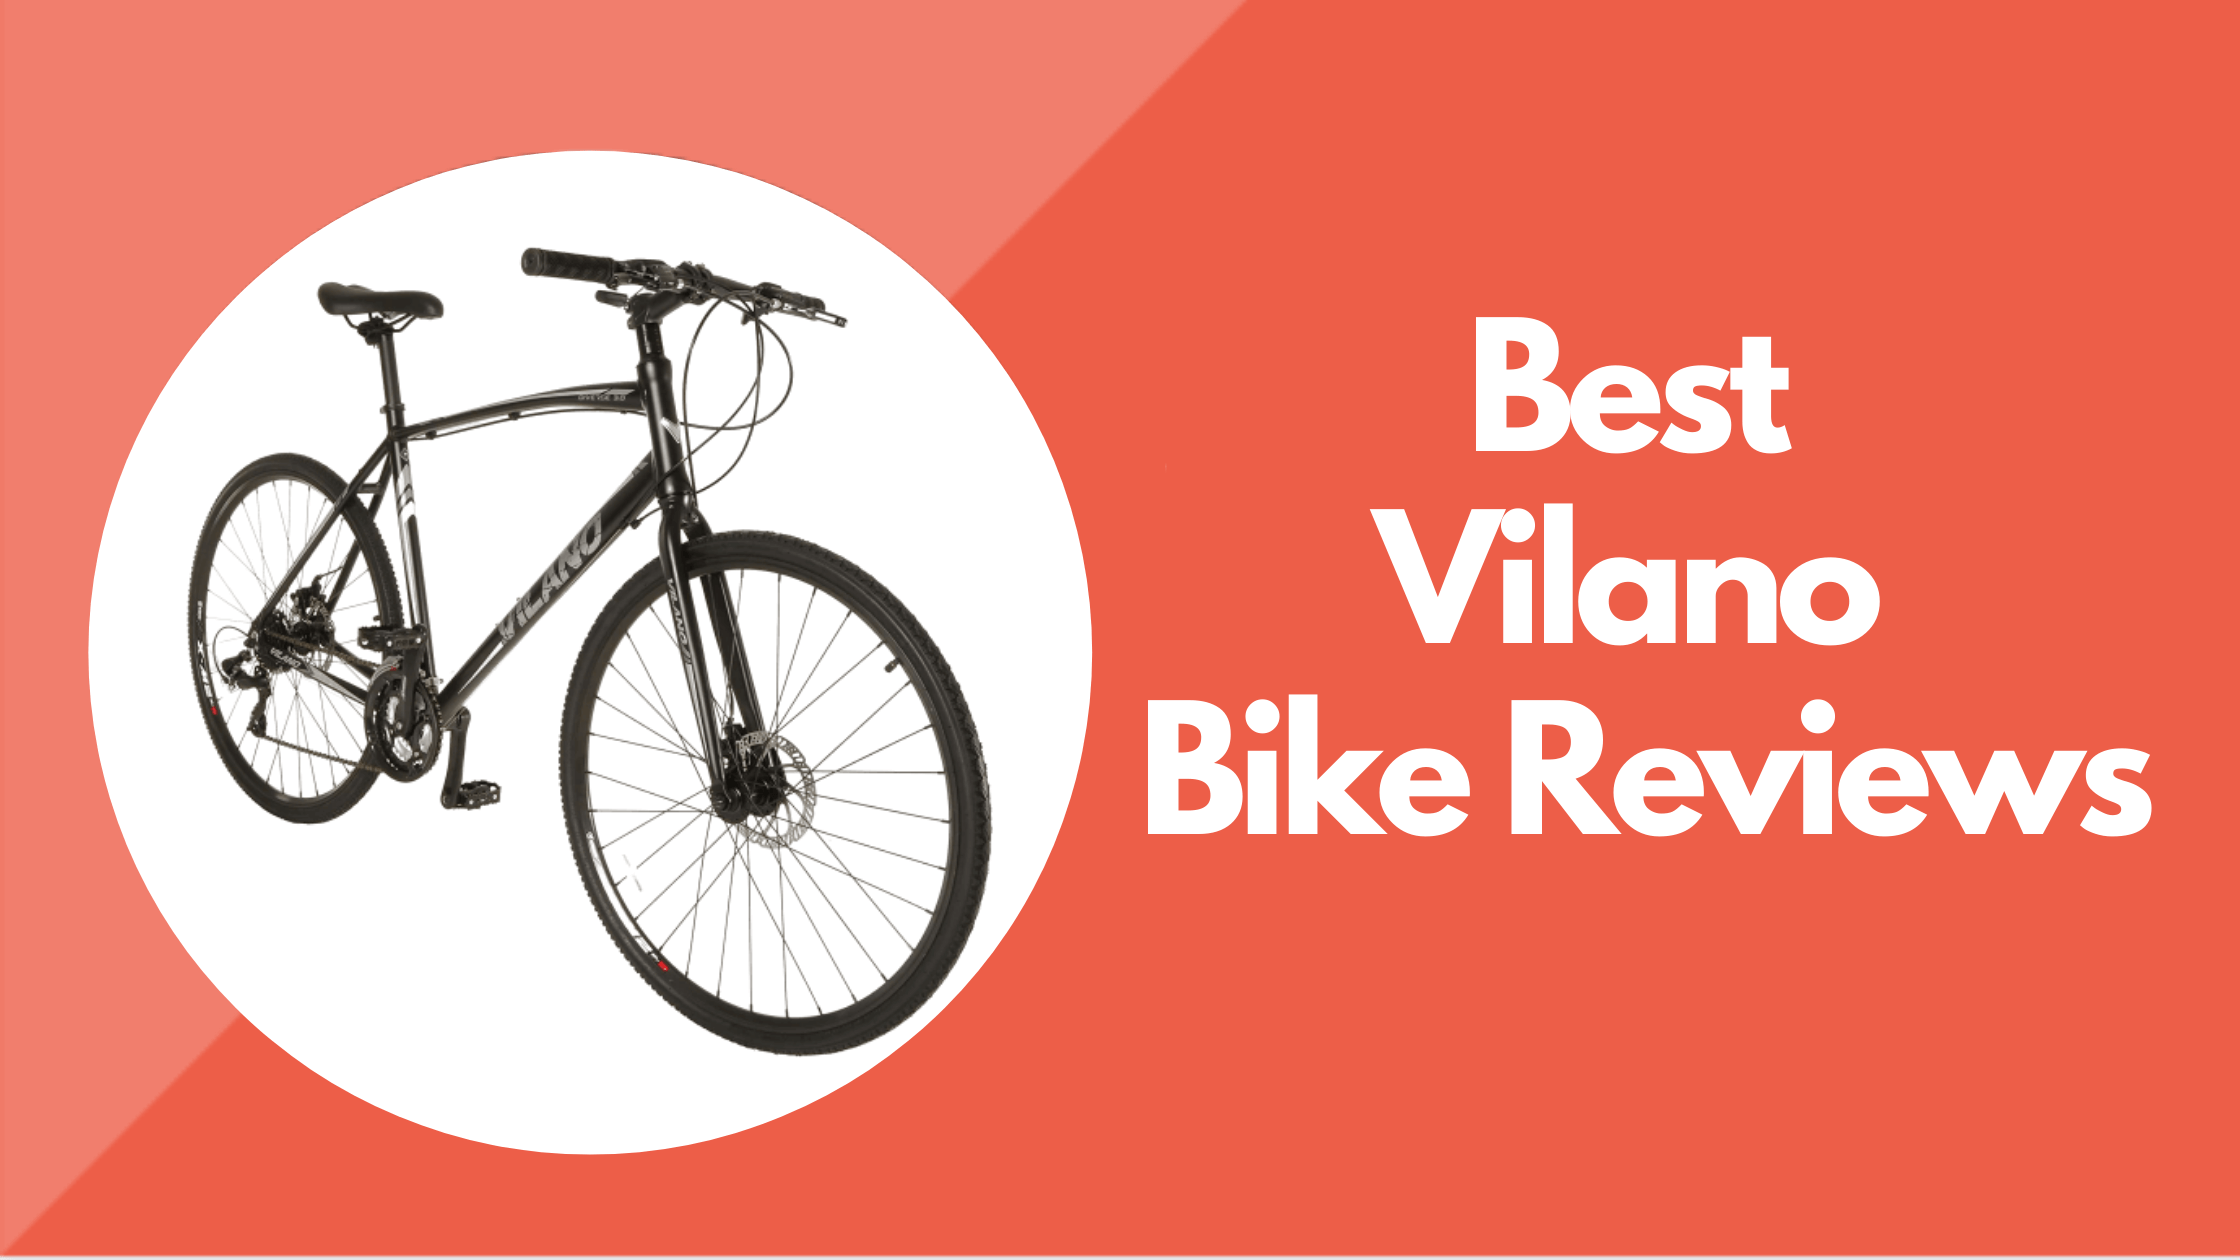 Vilano Bike Reviews